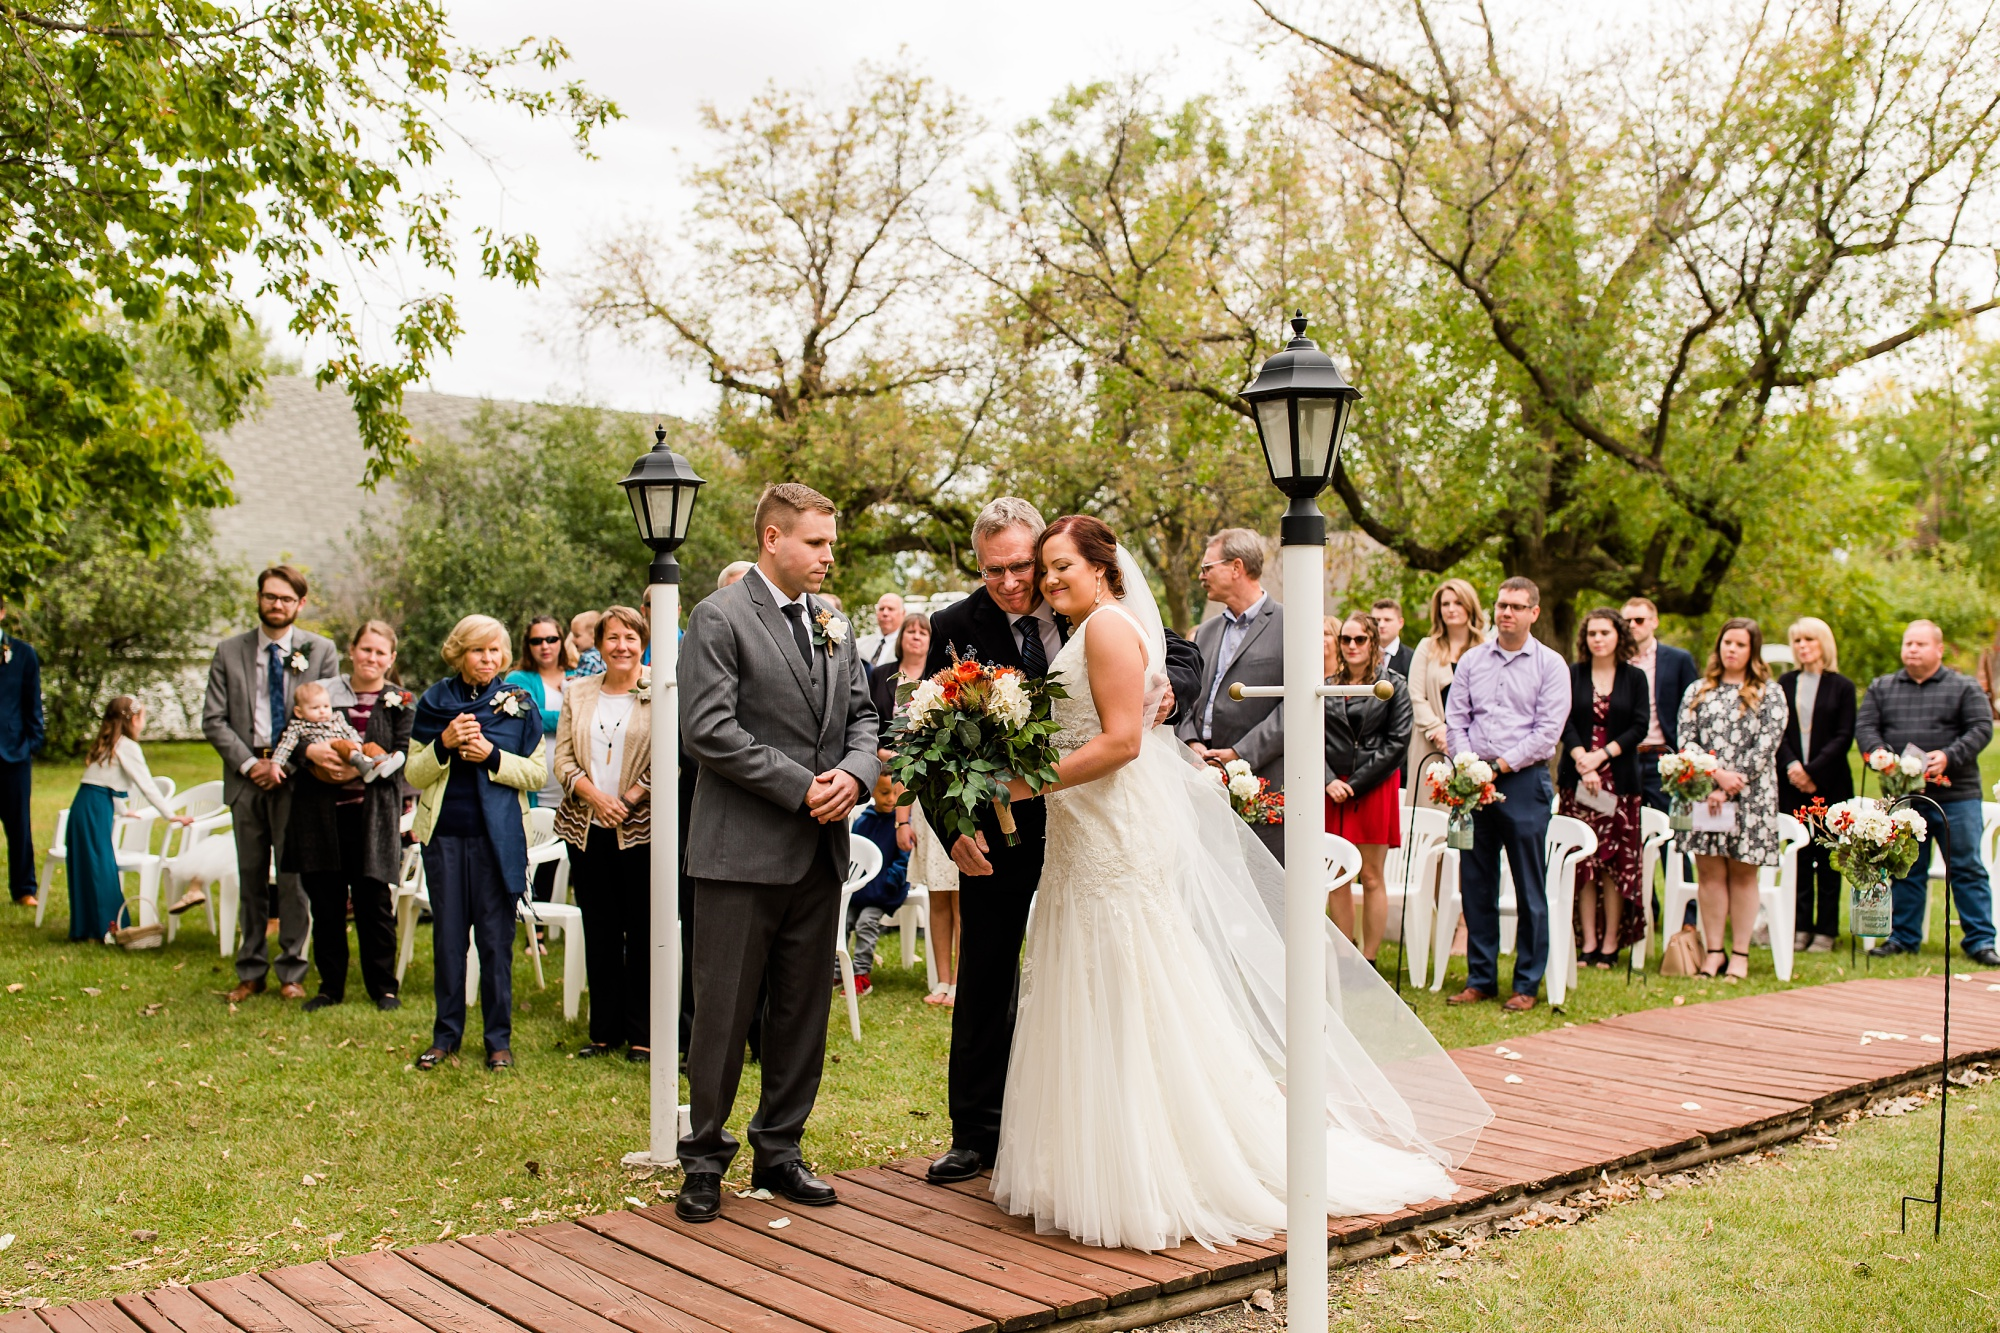 Amber Langerud Photography_Moohread, Outdoor, Barn Wedding at A Friends House_7099.jpg